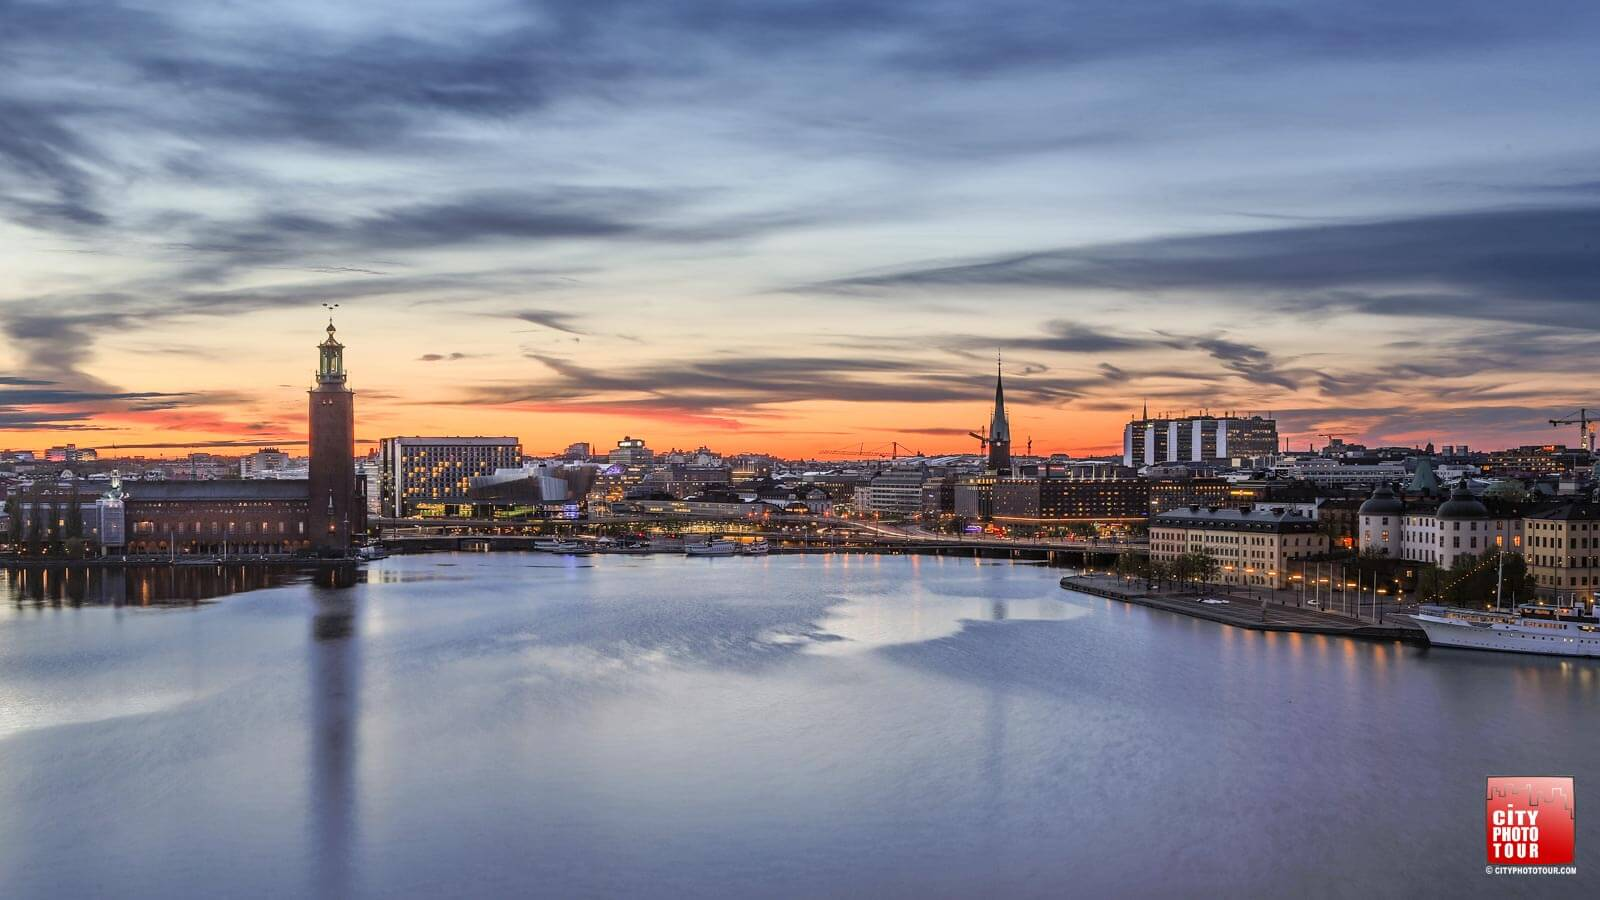 Stockholm by night - Photo tours and sightseeing in Stockholm - Things to do at night